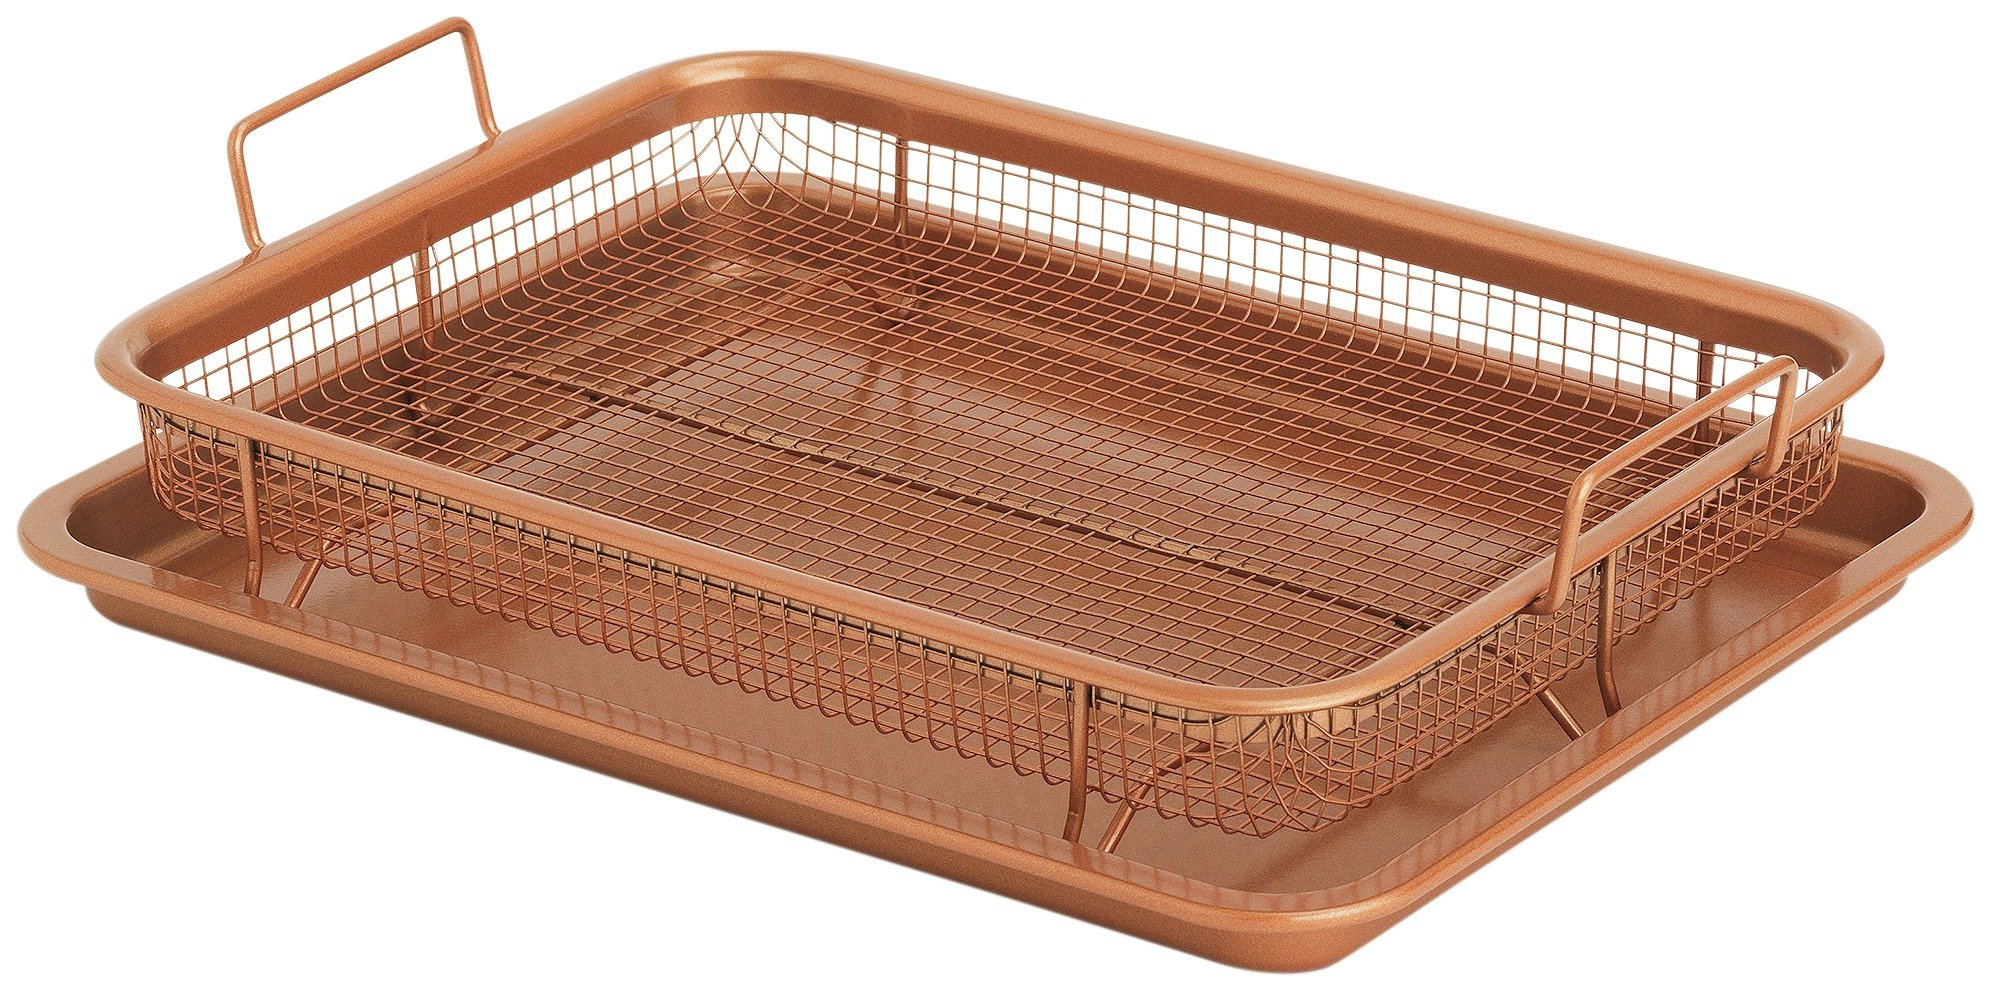 Copper Crisper Elevated Non Stick Oven Baking Tray - 2pc Set